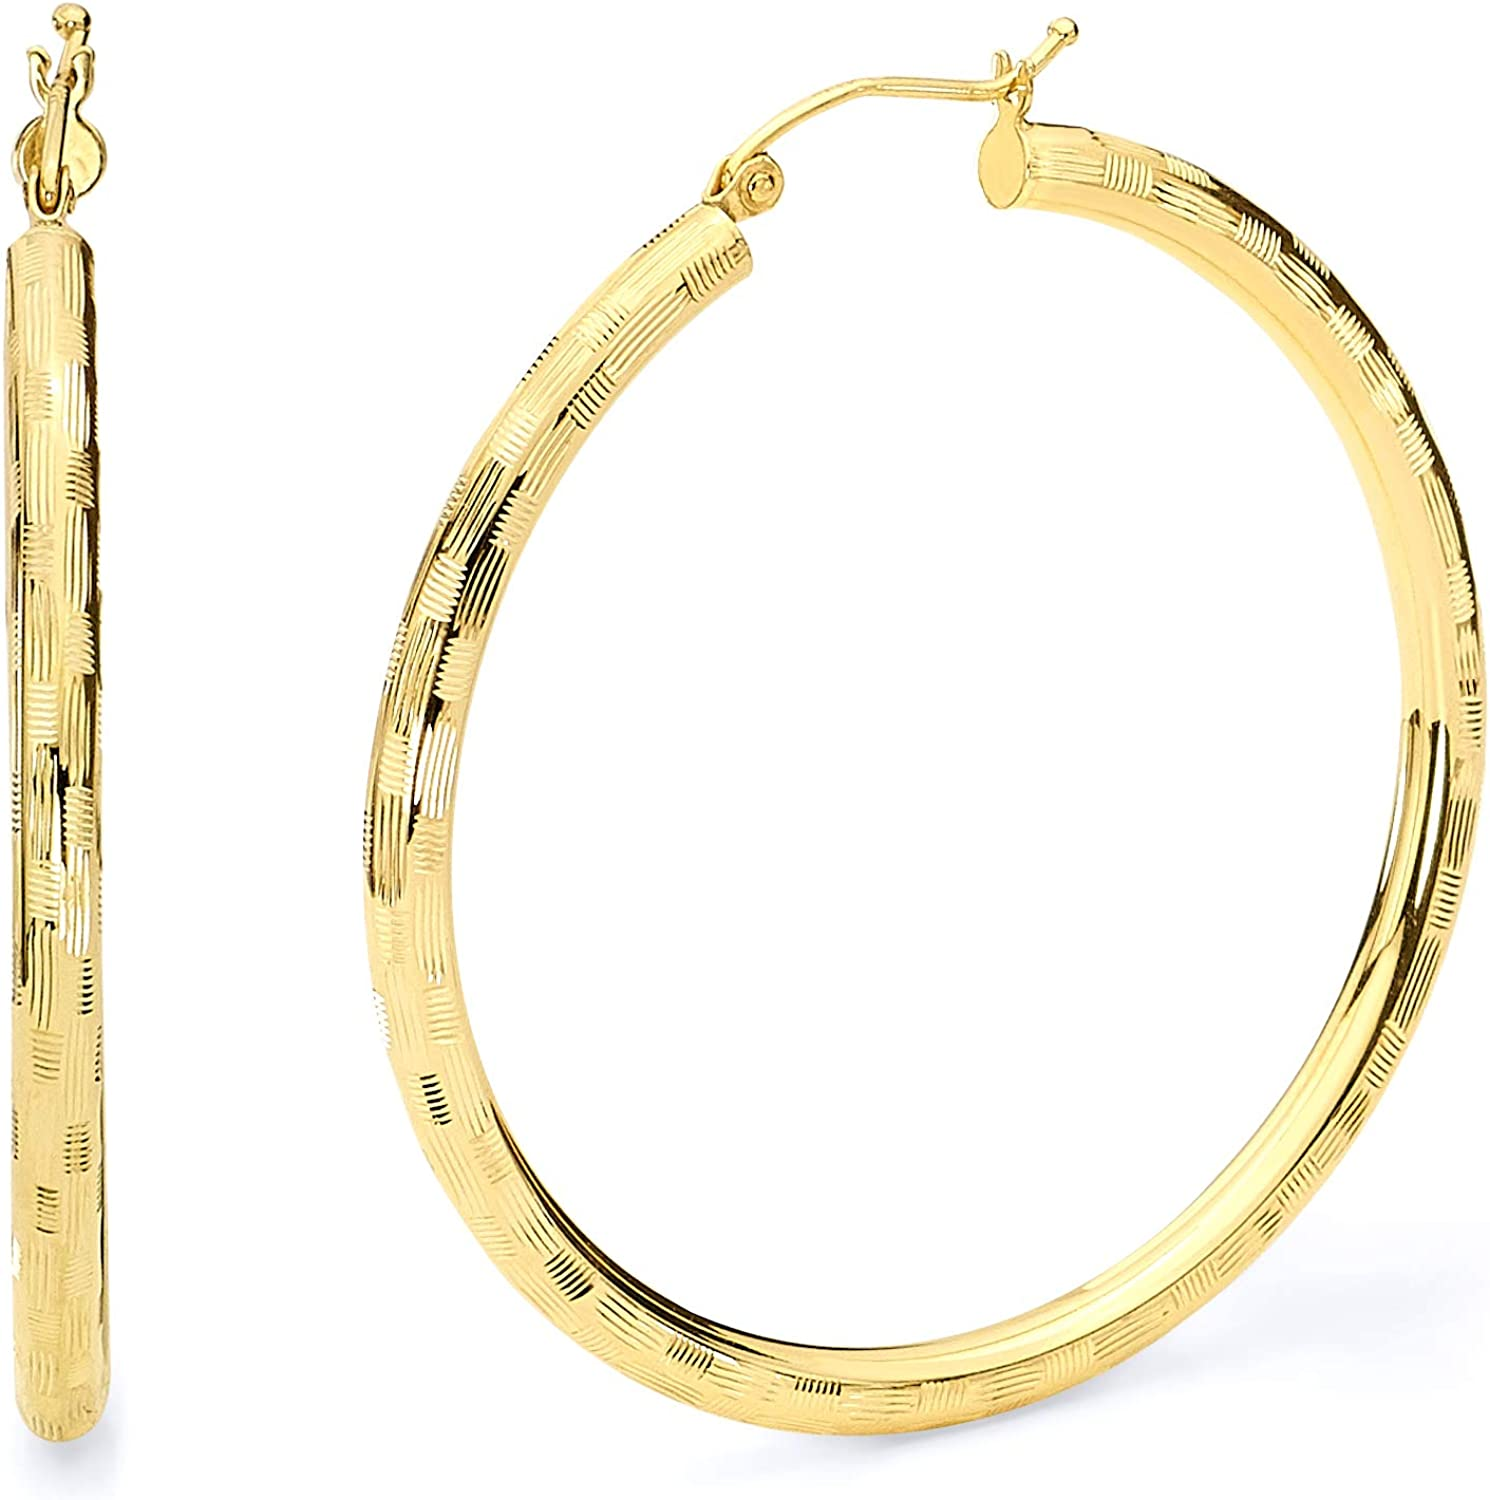 14k REAL Yellow Gold 3mm Thickness Hinged Diamond Cut Hoop Earrings - 6 Different Size Available